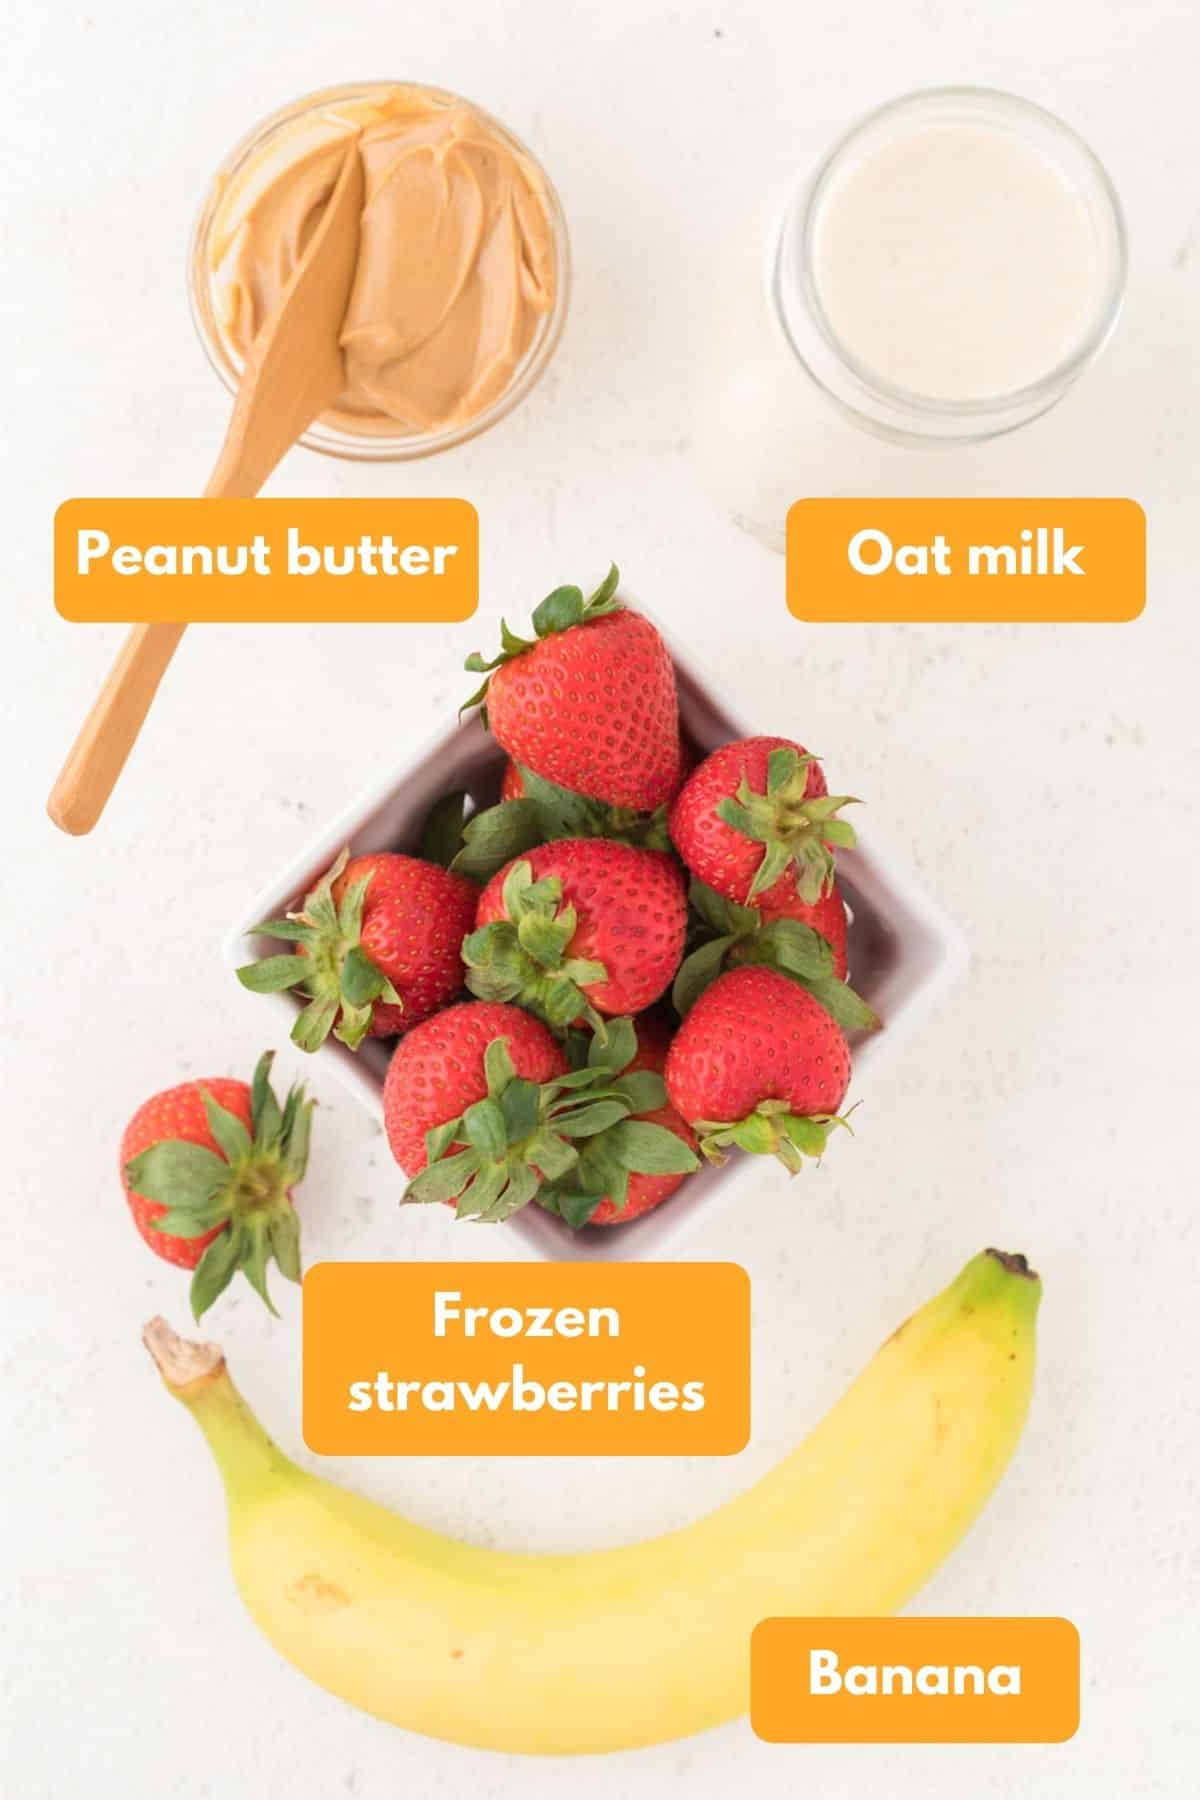 Ingredients for a strawberry smoothie